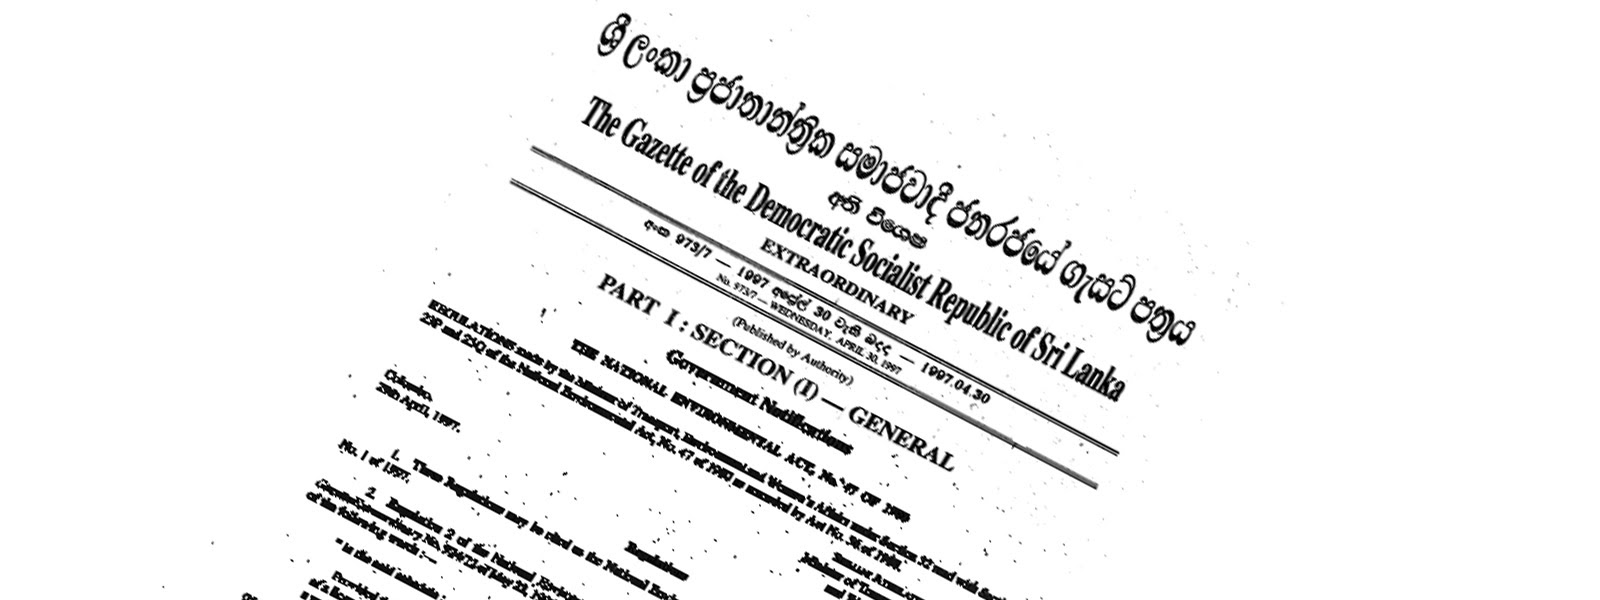 Name list of Local Government bodies gazetted